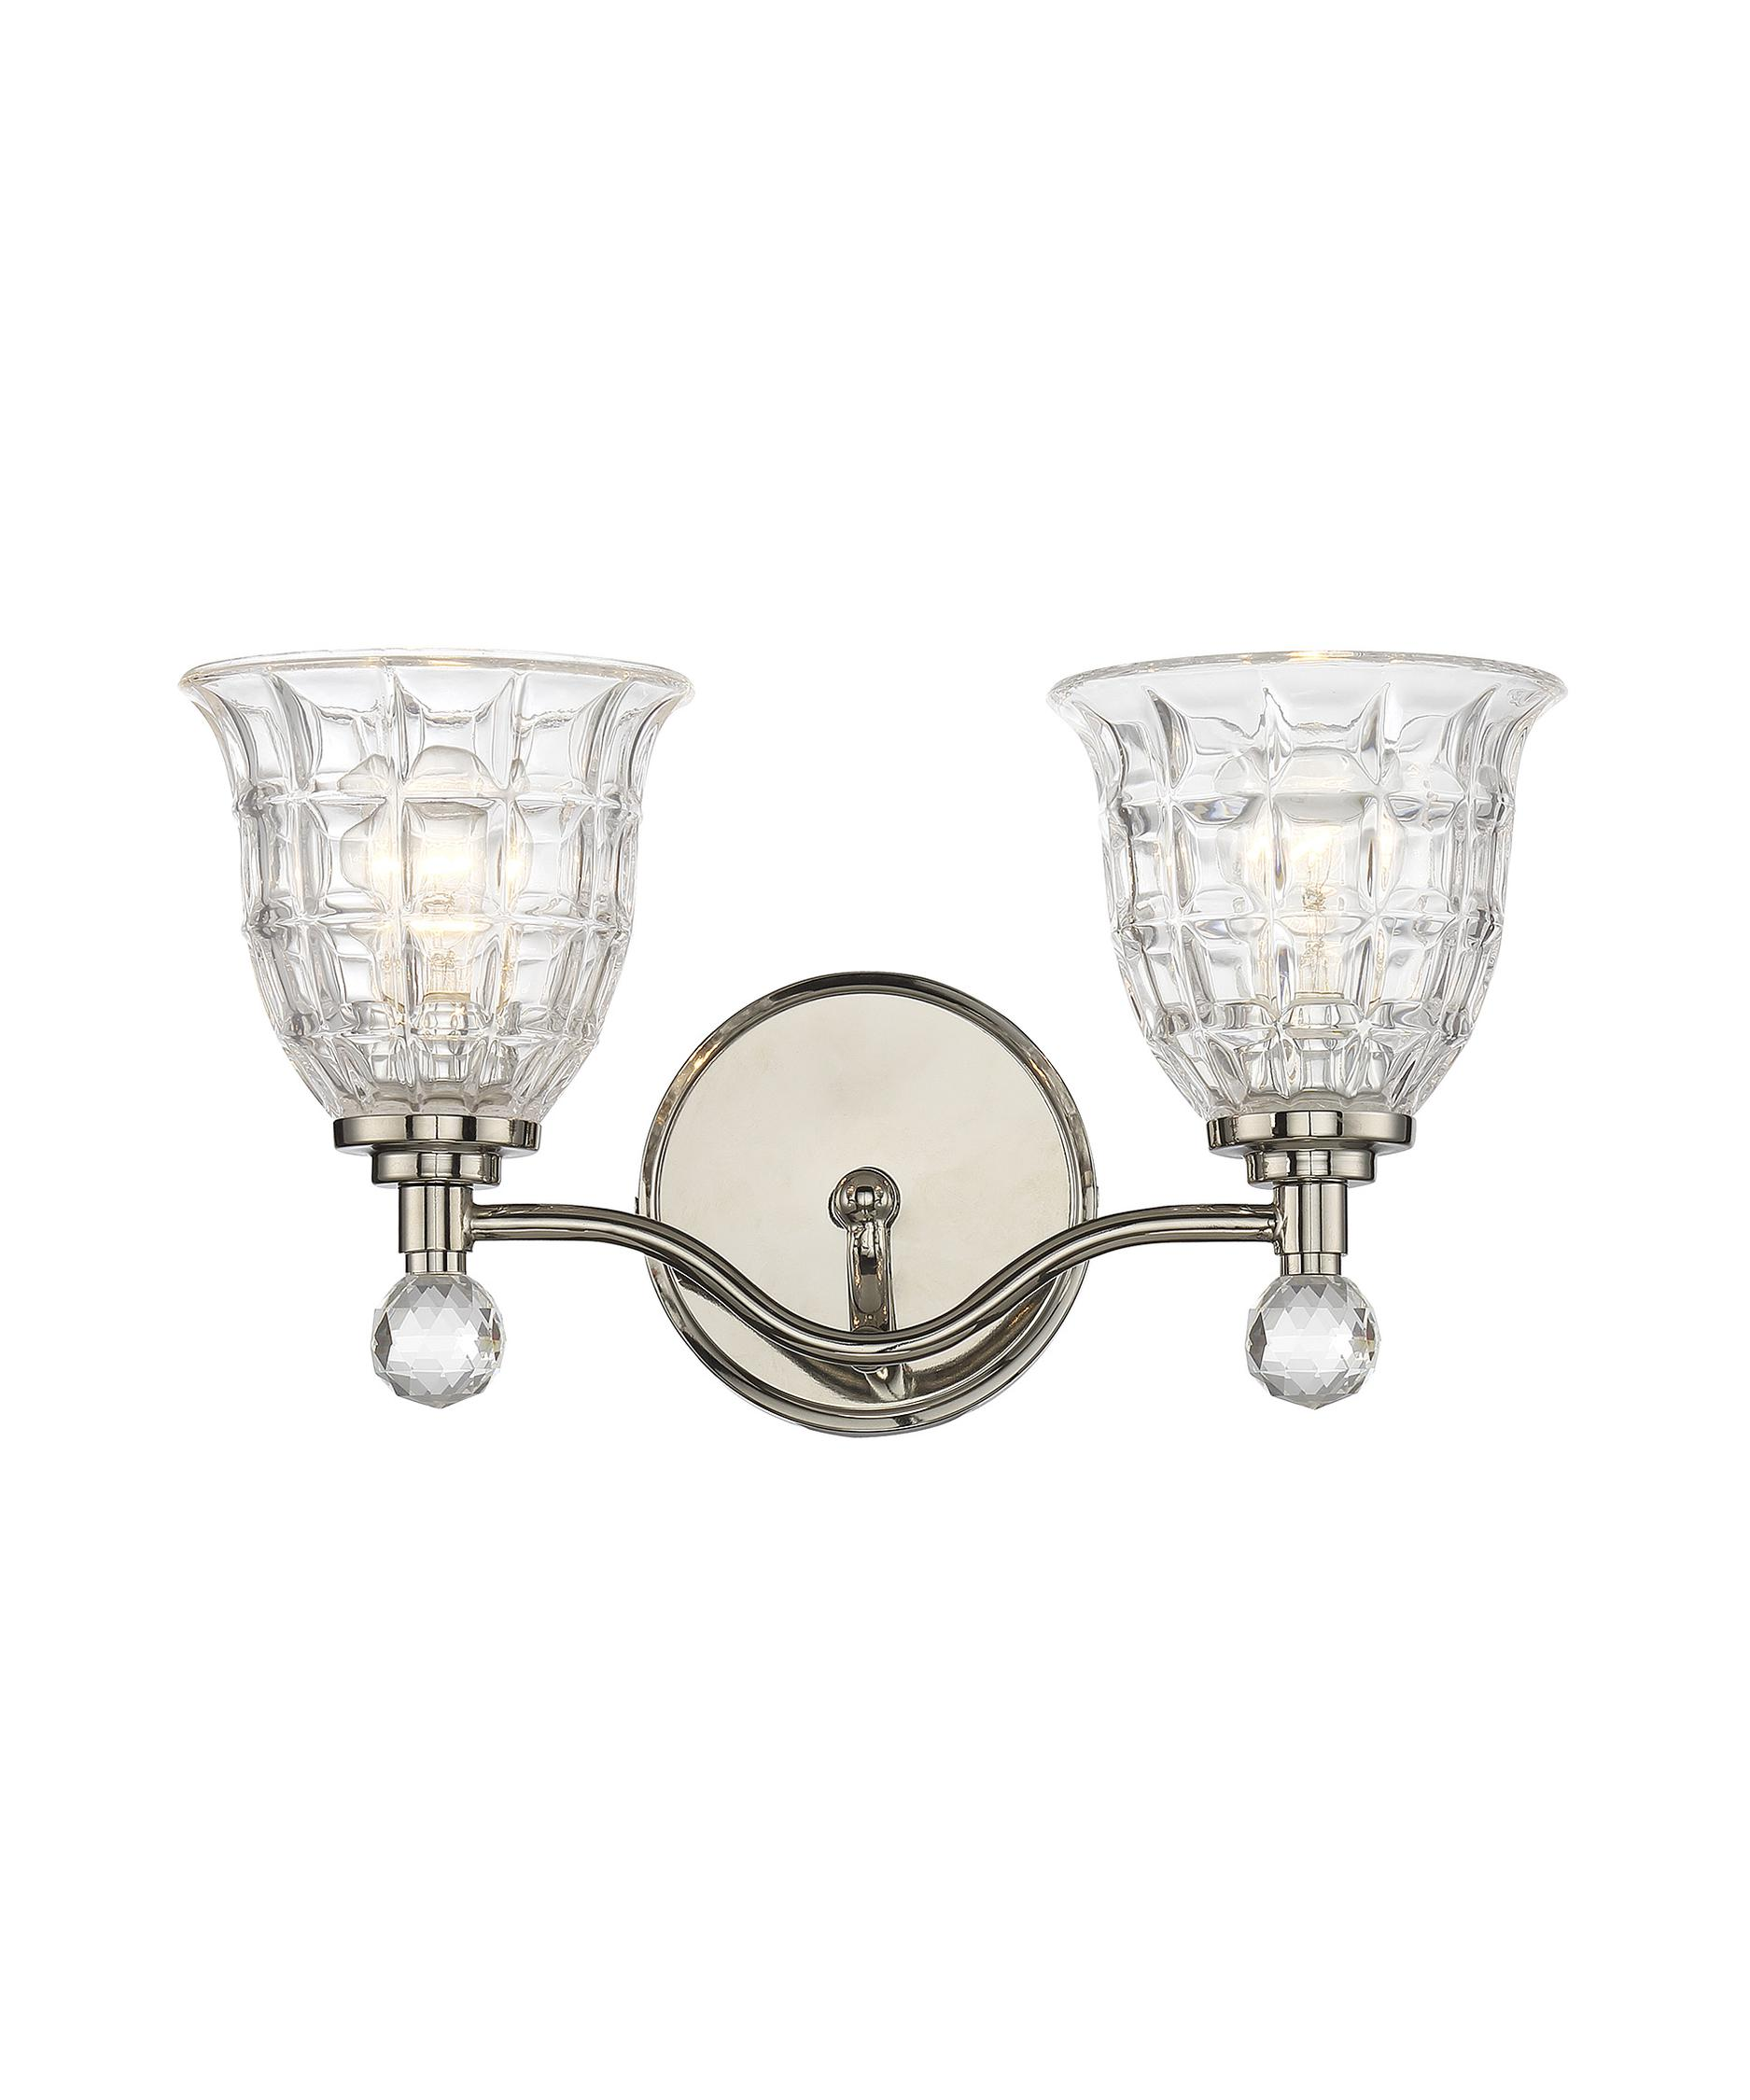 Bathroom Vanity Lights Polished Nickel savoy house 8-880-2-109 birone 16 inch wide bath vanity light